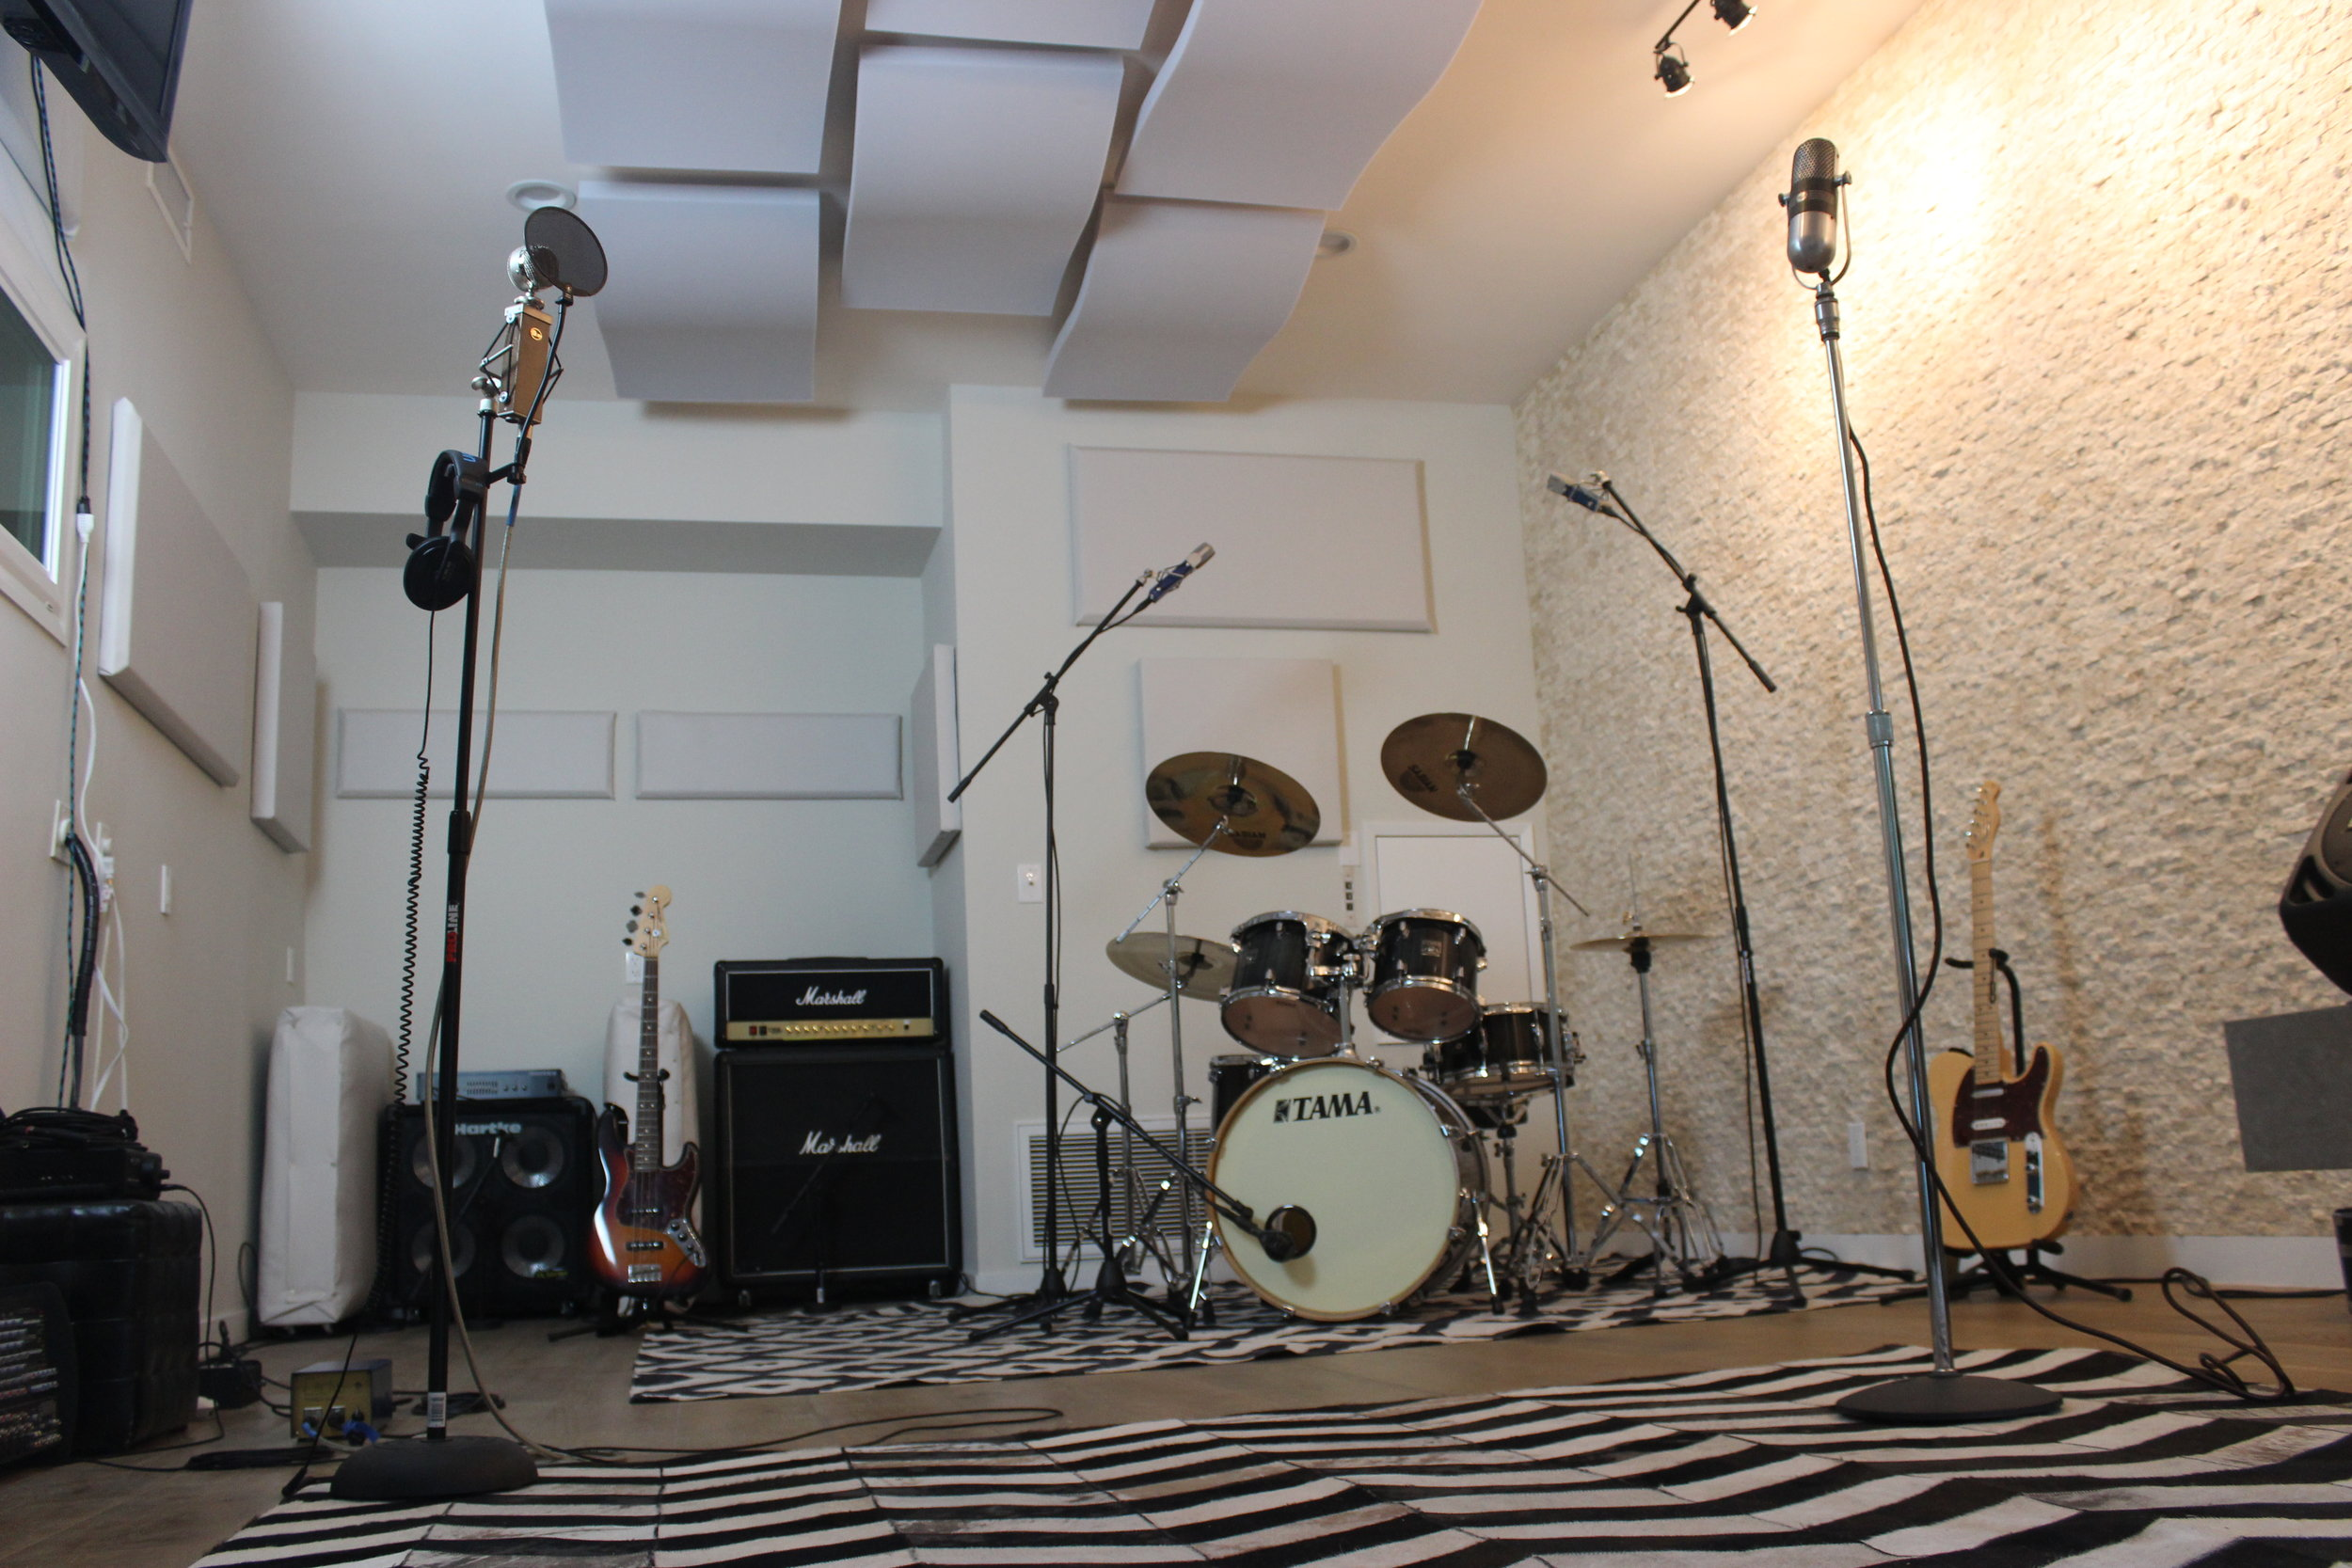 Blanck Records Live Room Instruments 2.JPG